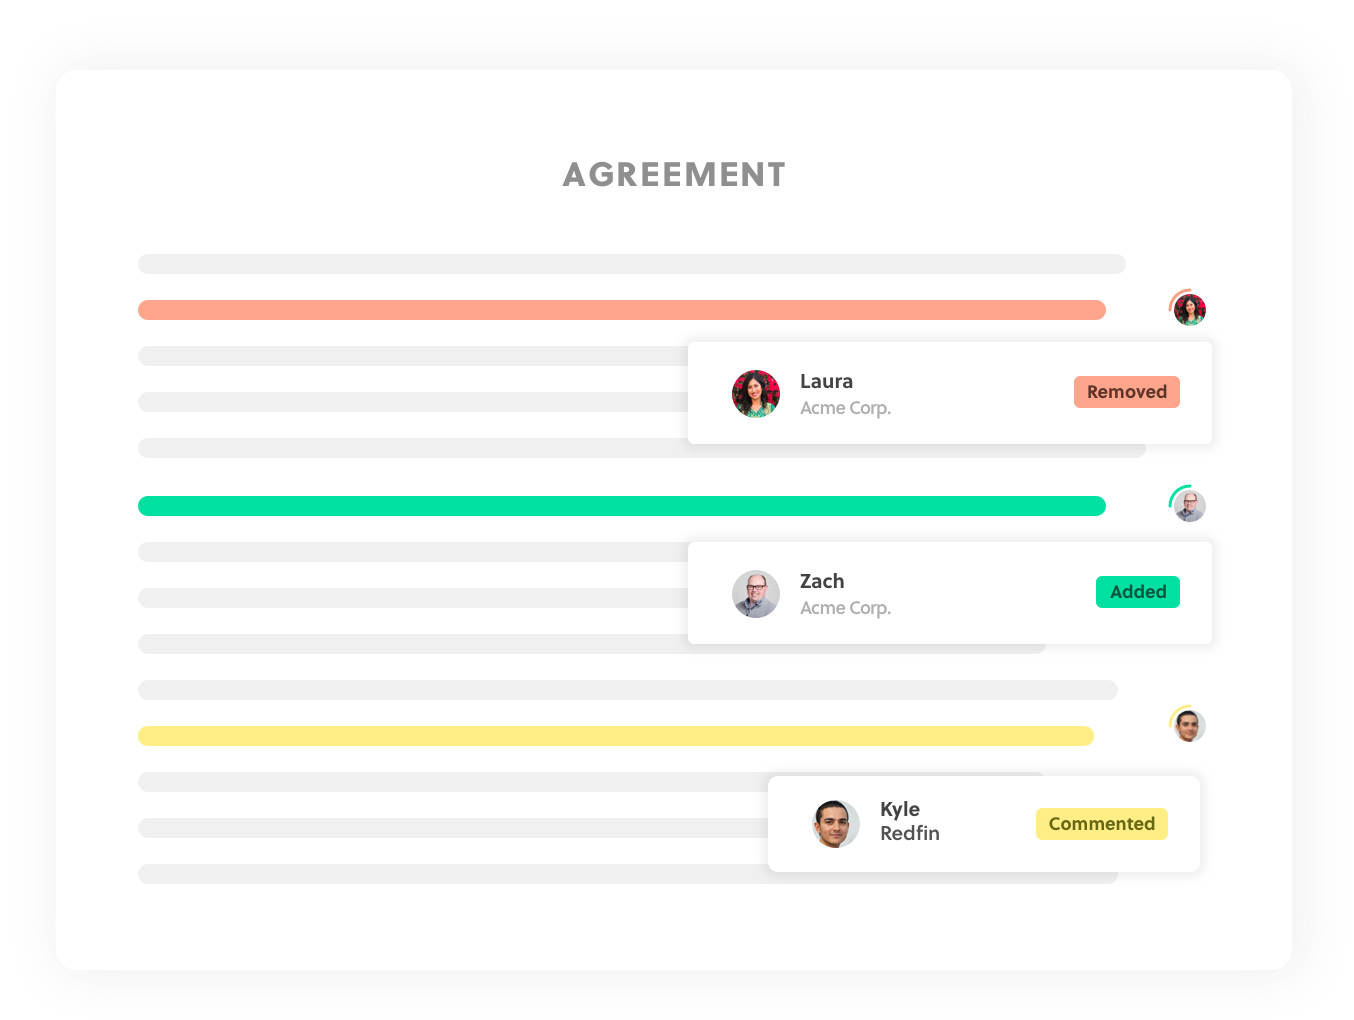 Create, edit, e-sign, and manage — all in one place